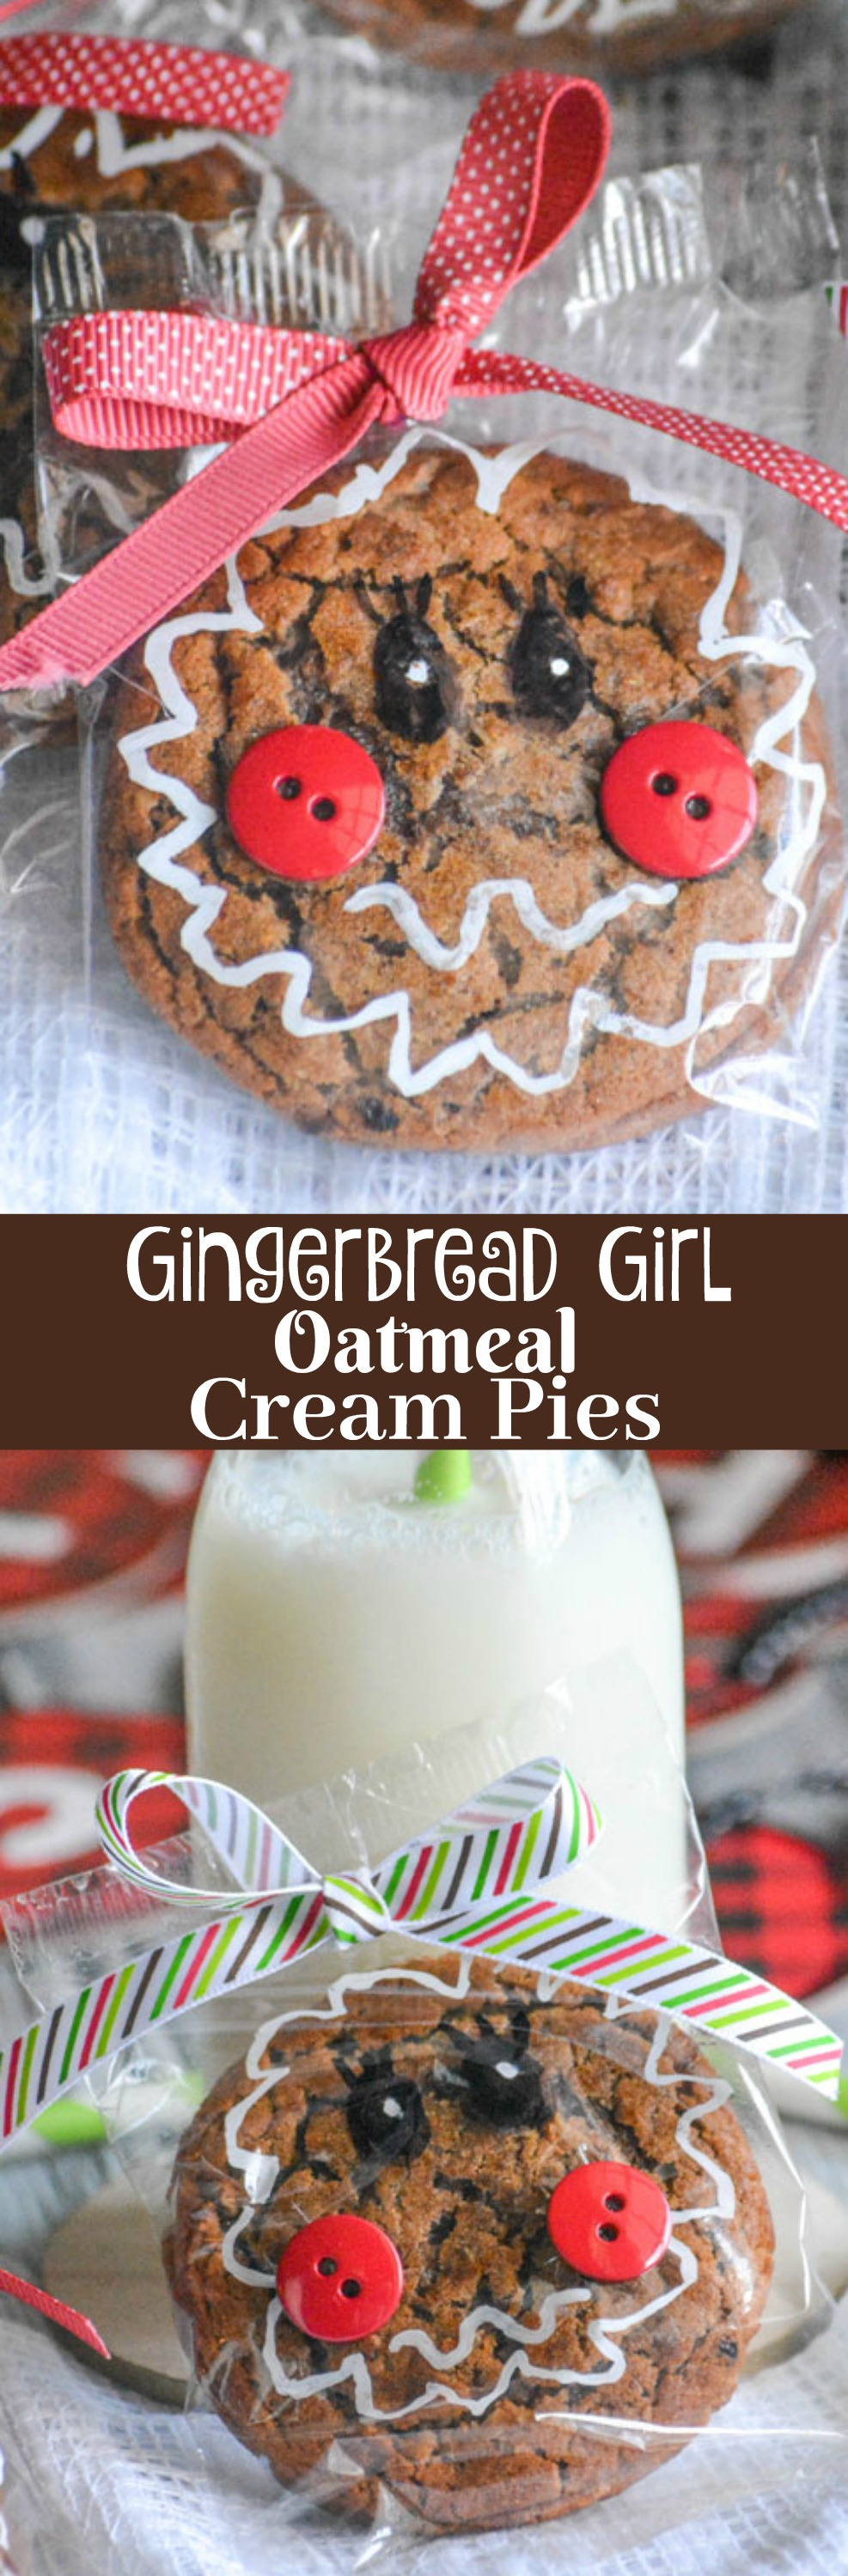 A great way to show friends & family you care during the holidays is with hand made gifts, these Gingerbread Girl Packaged Oatmeal Cream Pies are perfect for kids. They're a fun, easy craft that looks adorable and anyone would be proud to give.